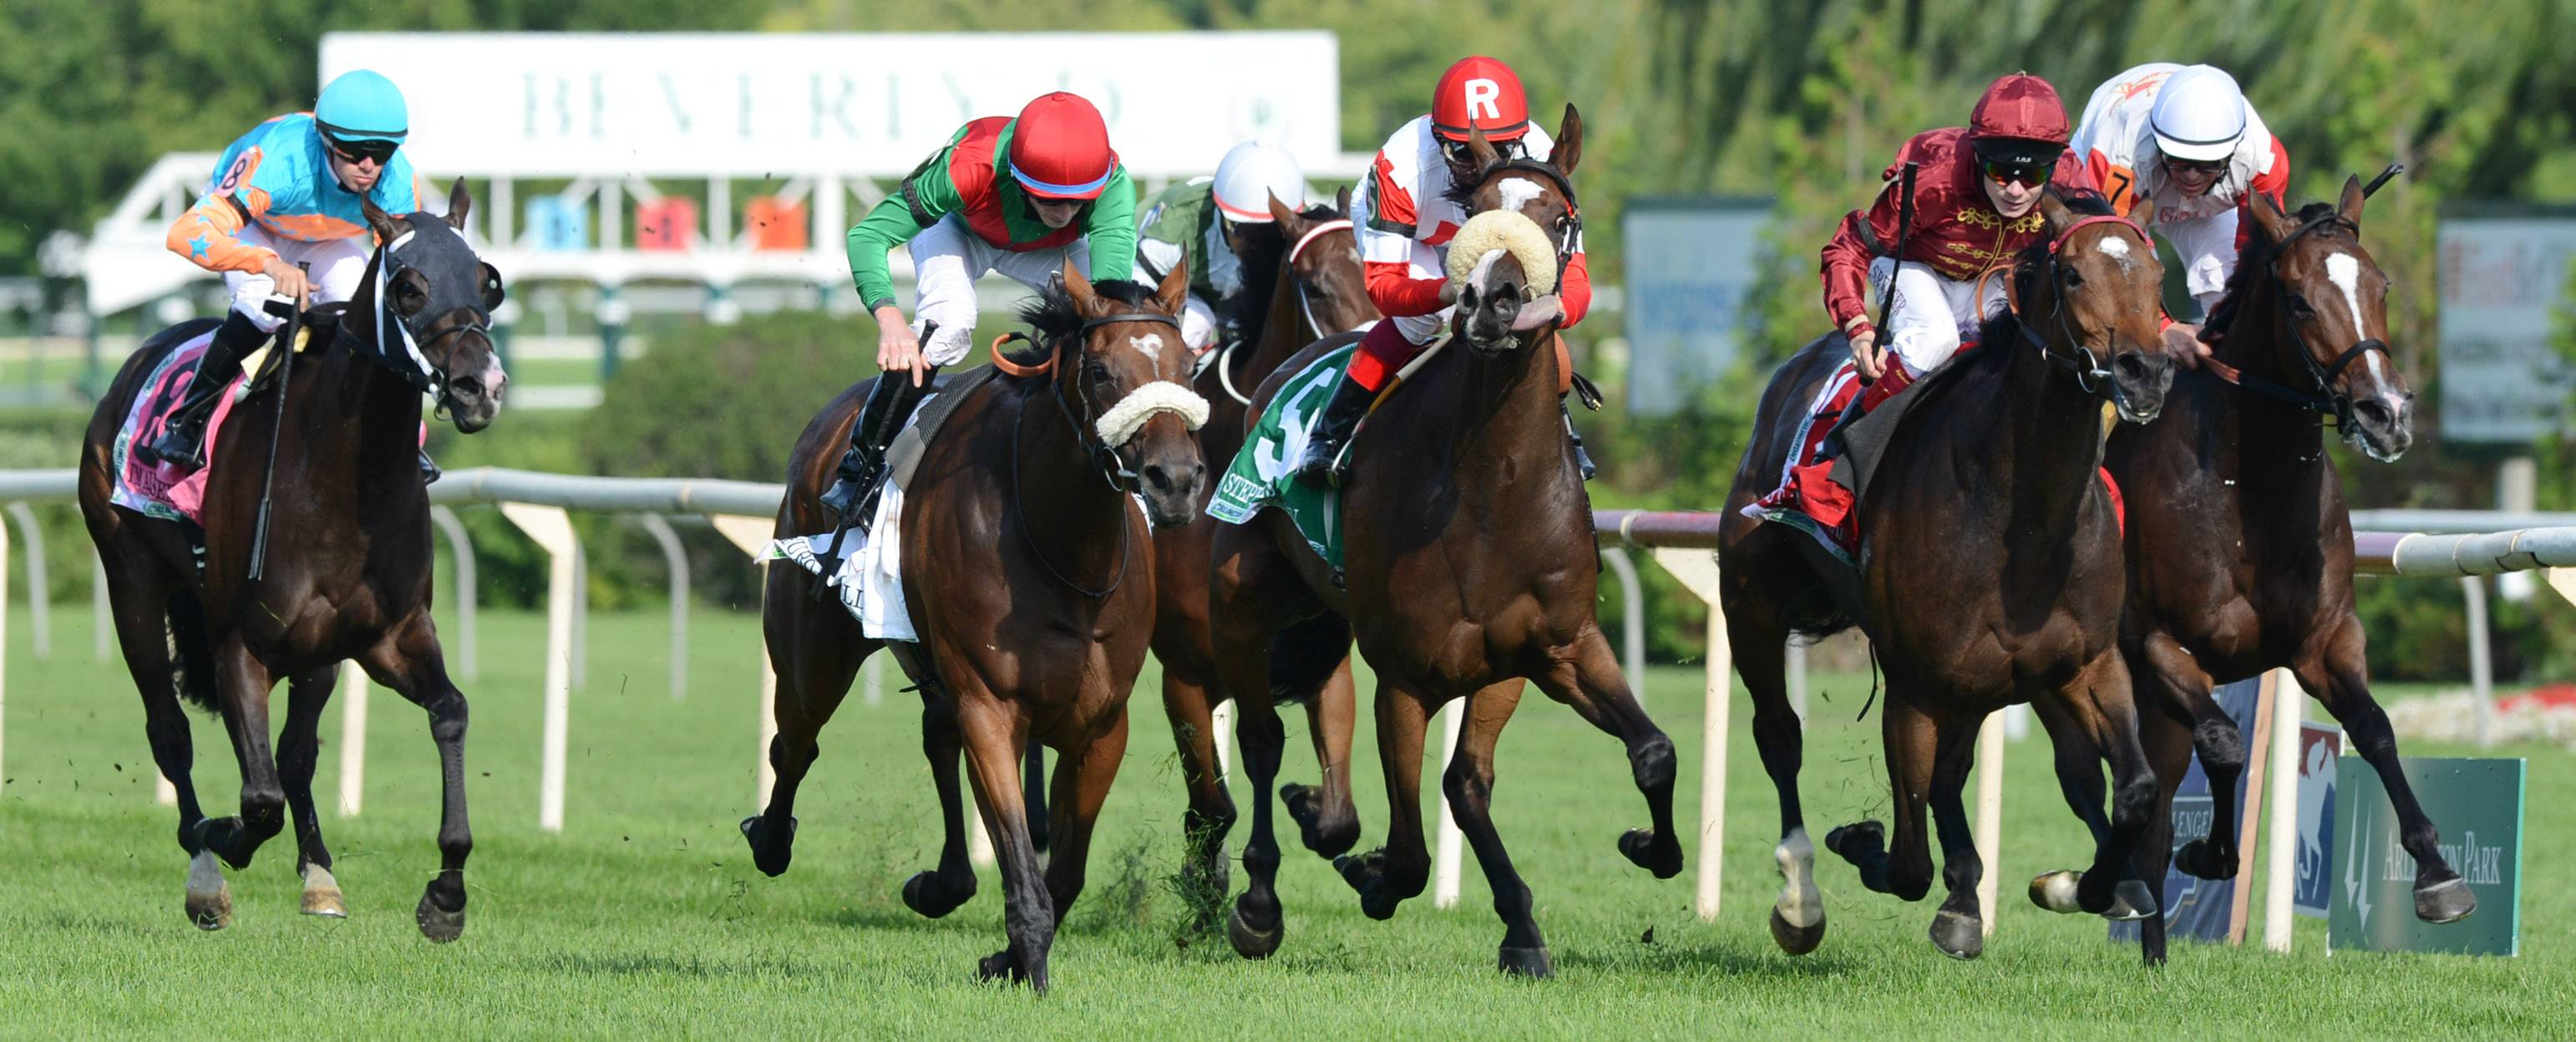 Jockey Ryan Moore rides Euro Charline, left, to a win in the Beverly D. during the International Festival of Racing at Arlington International Racecourse on Saturday.